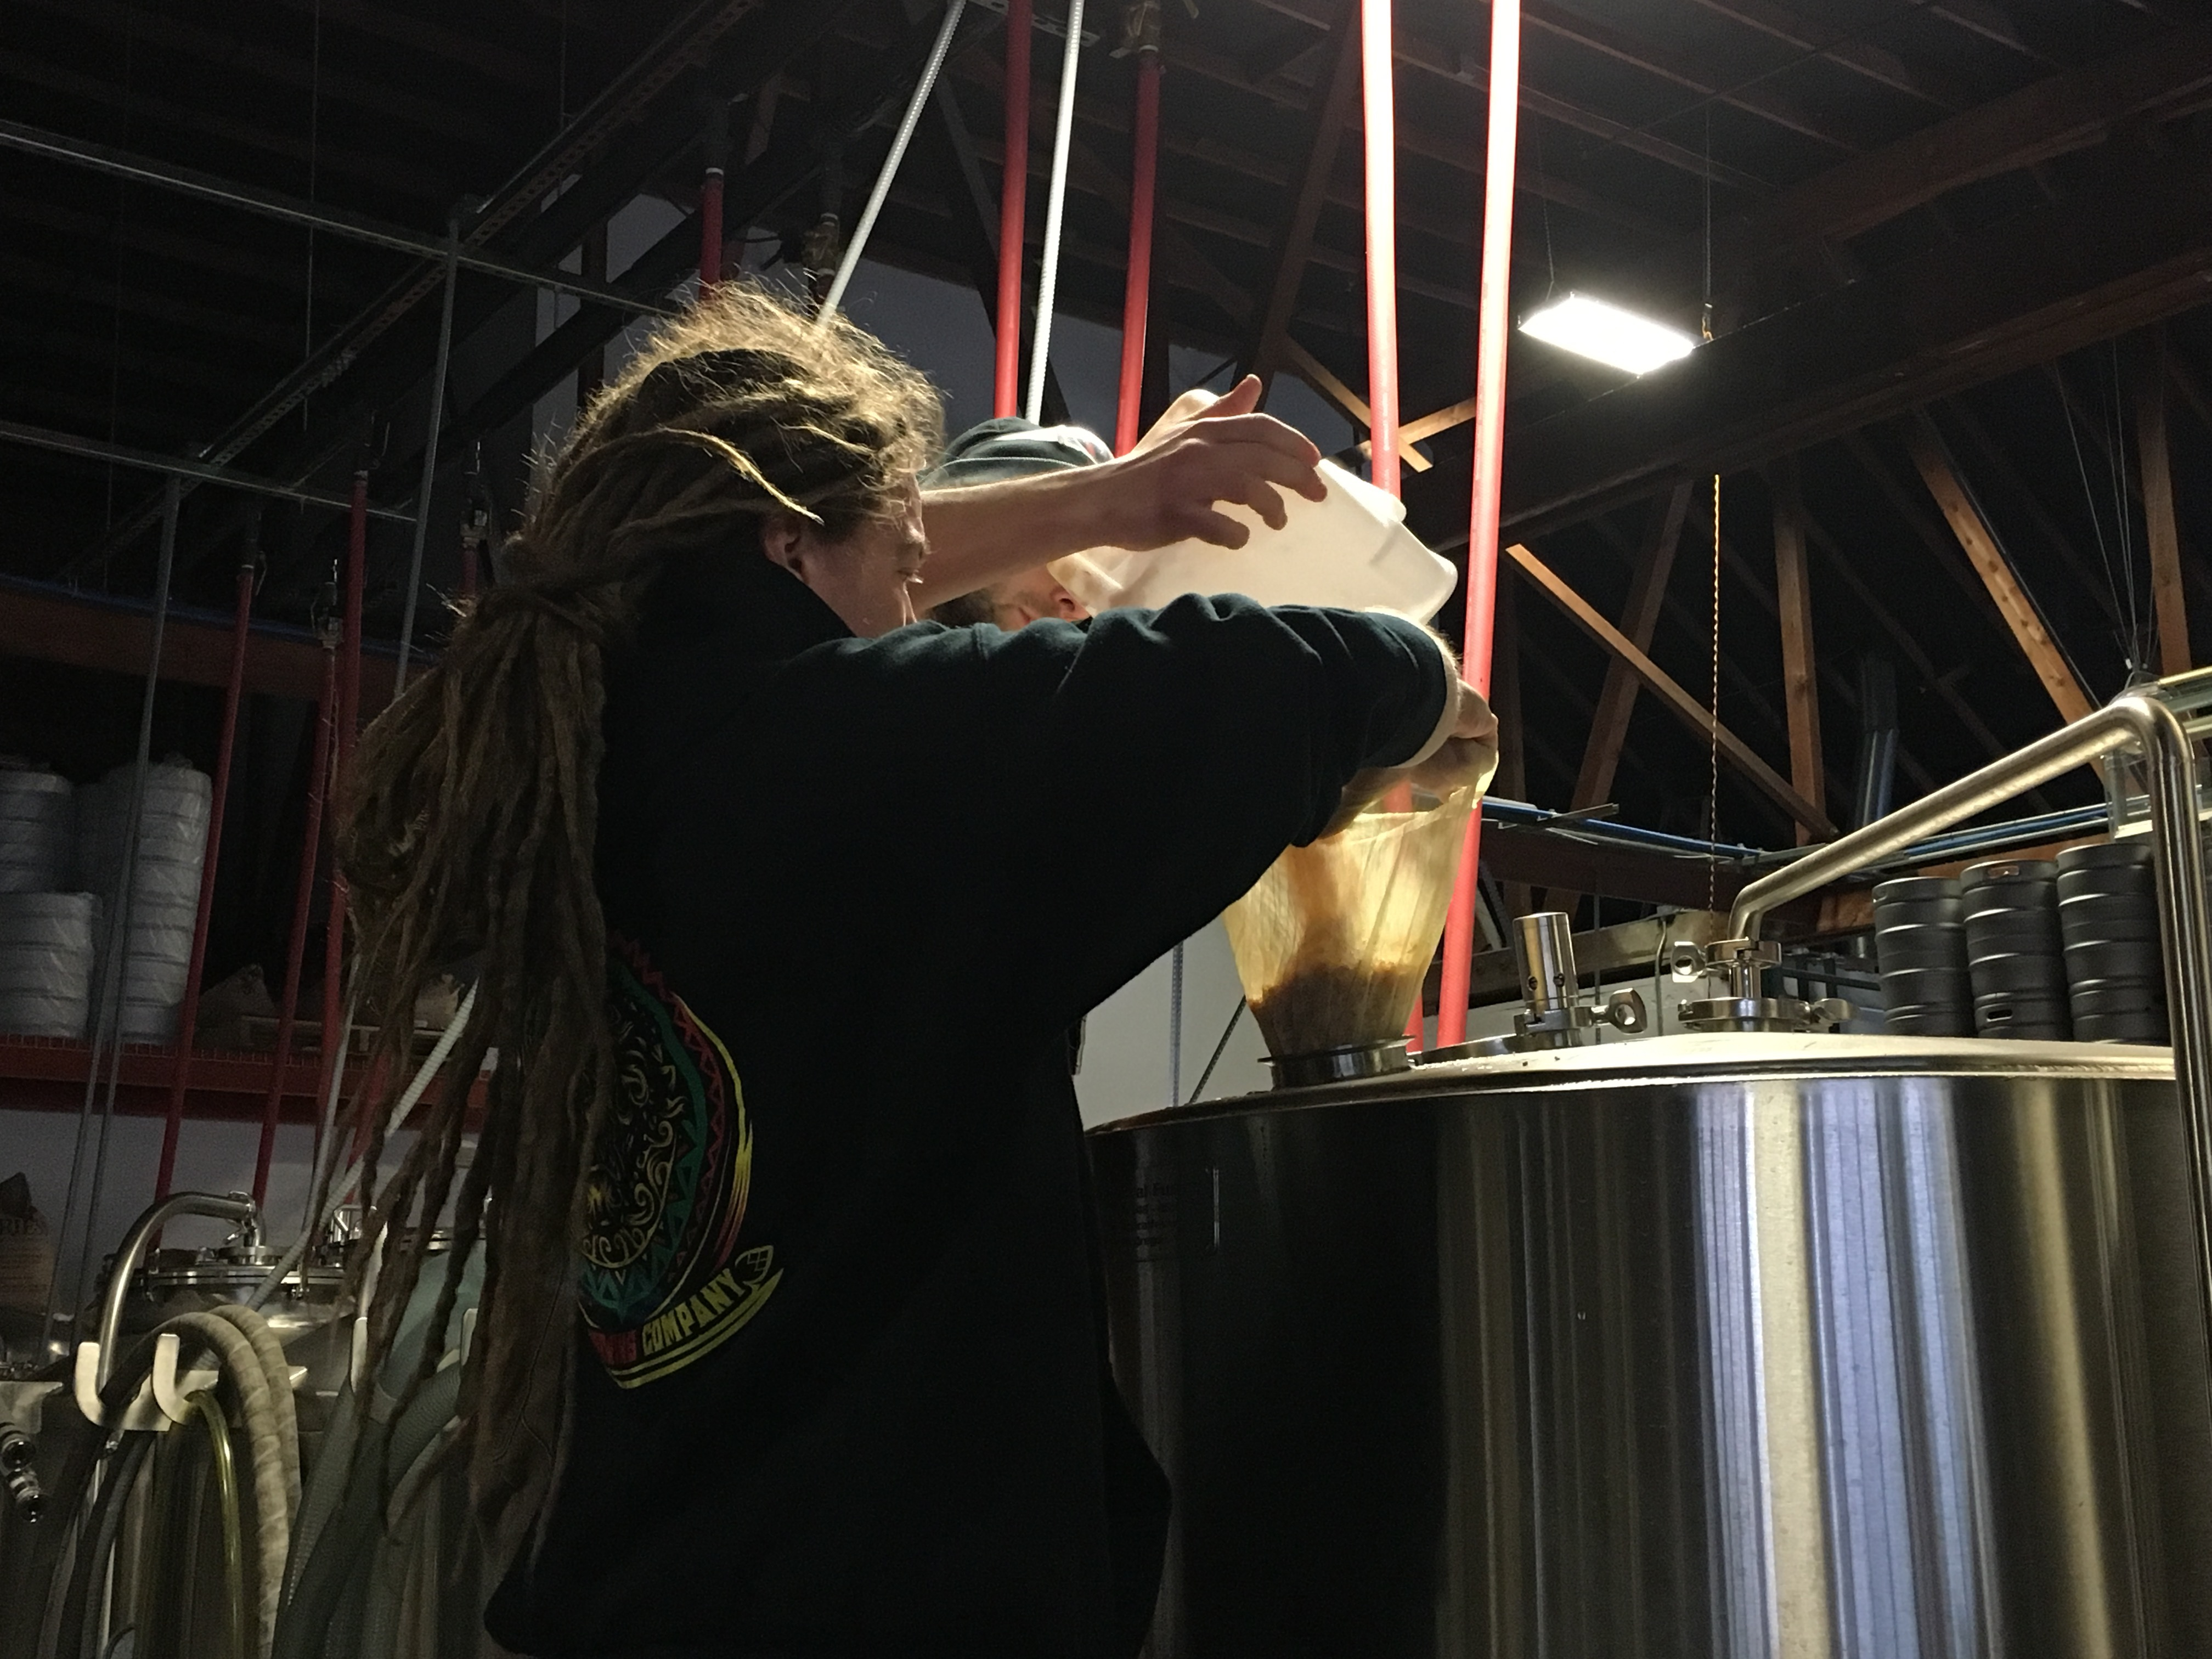 Erick Russ adding more toasted coconut to Pono Brewing's Toasted Coconut Cream Ale